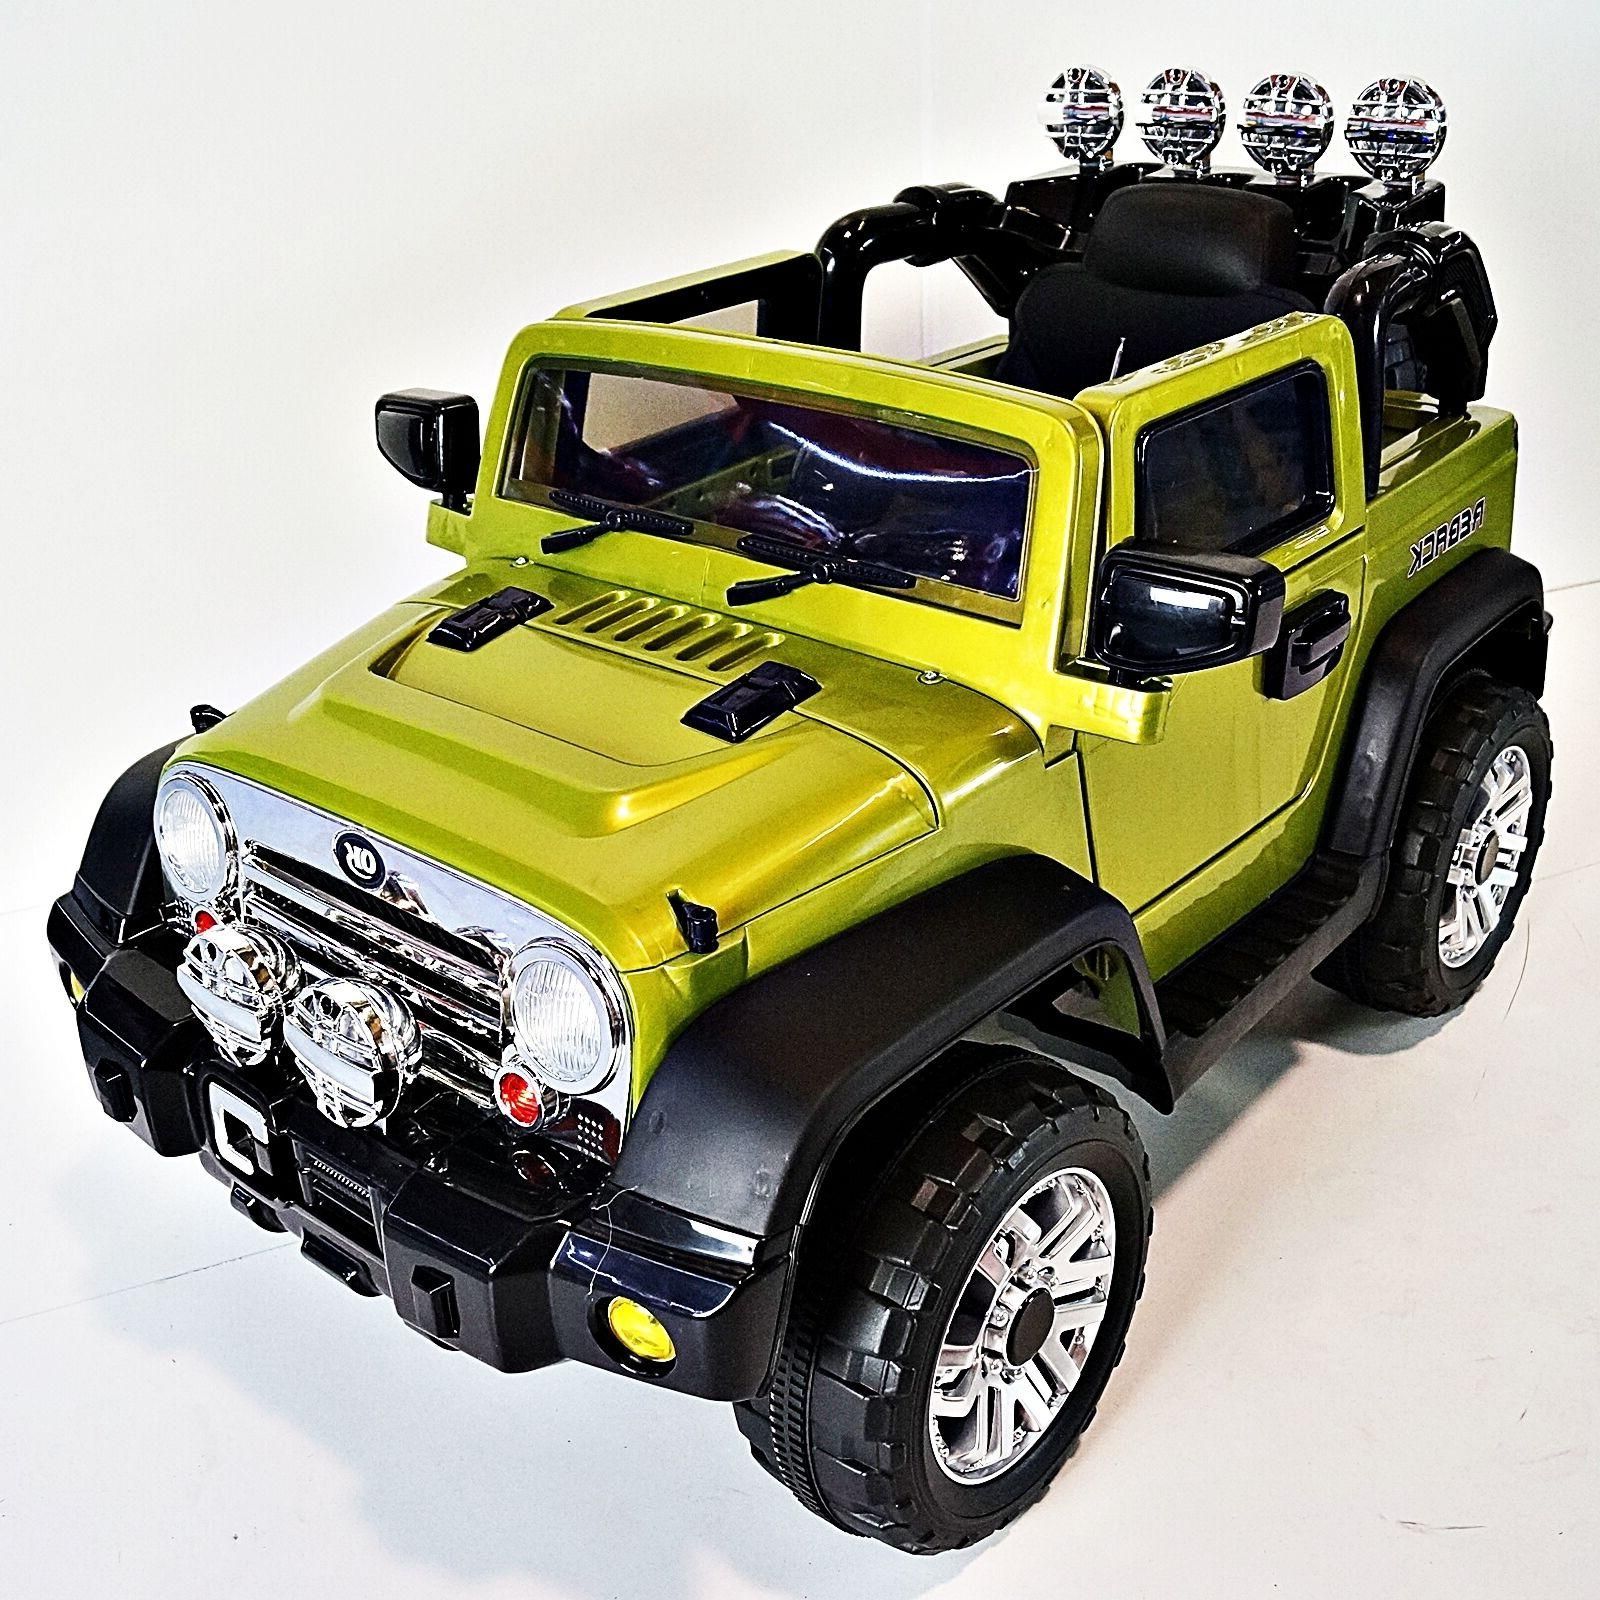 JEEP Wrangler Style For Kids Model JJ235 Ride On Car With Re